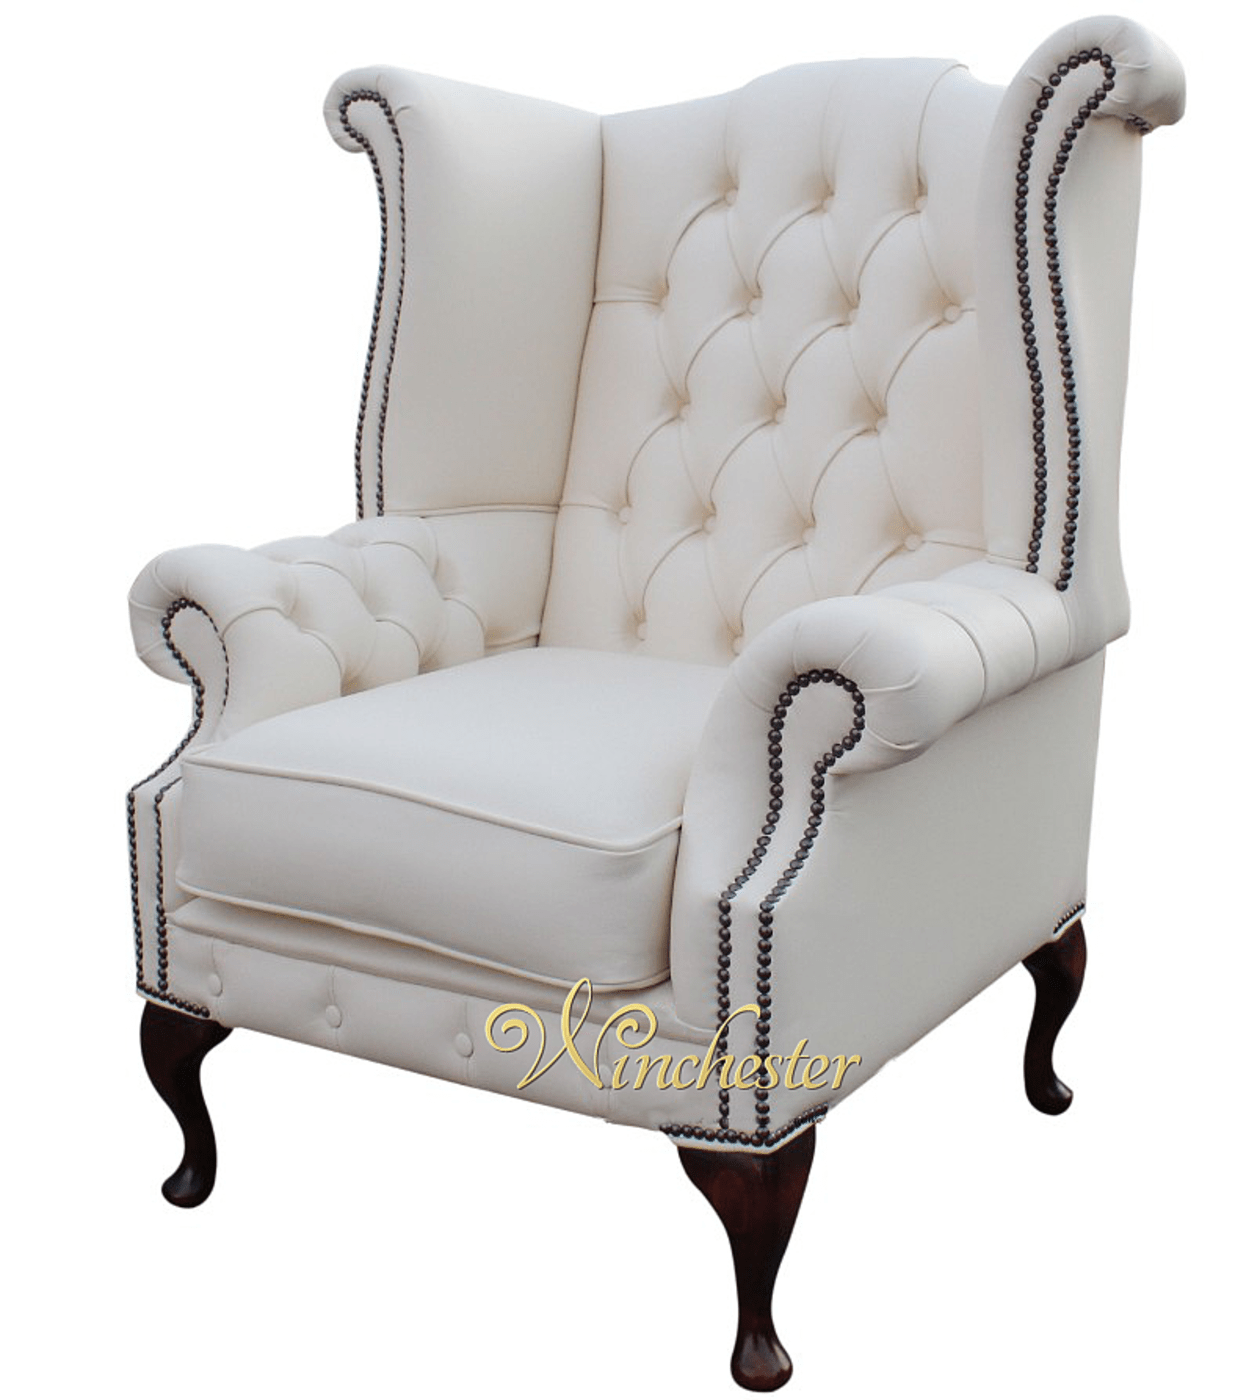 queen anne wingback chair leather wobble australia chesterfield chatsworth high back wing uk white armchair wc